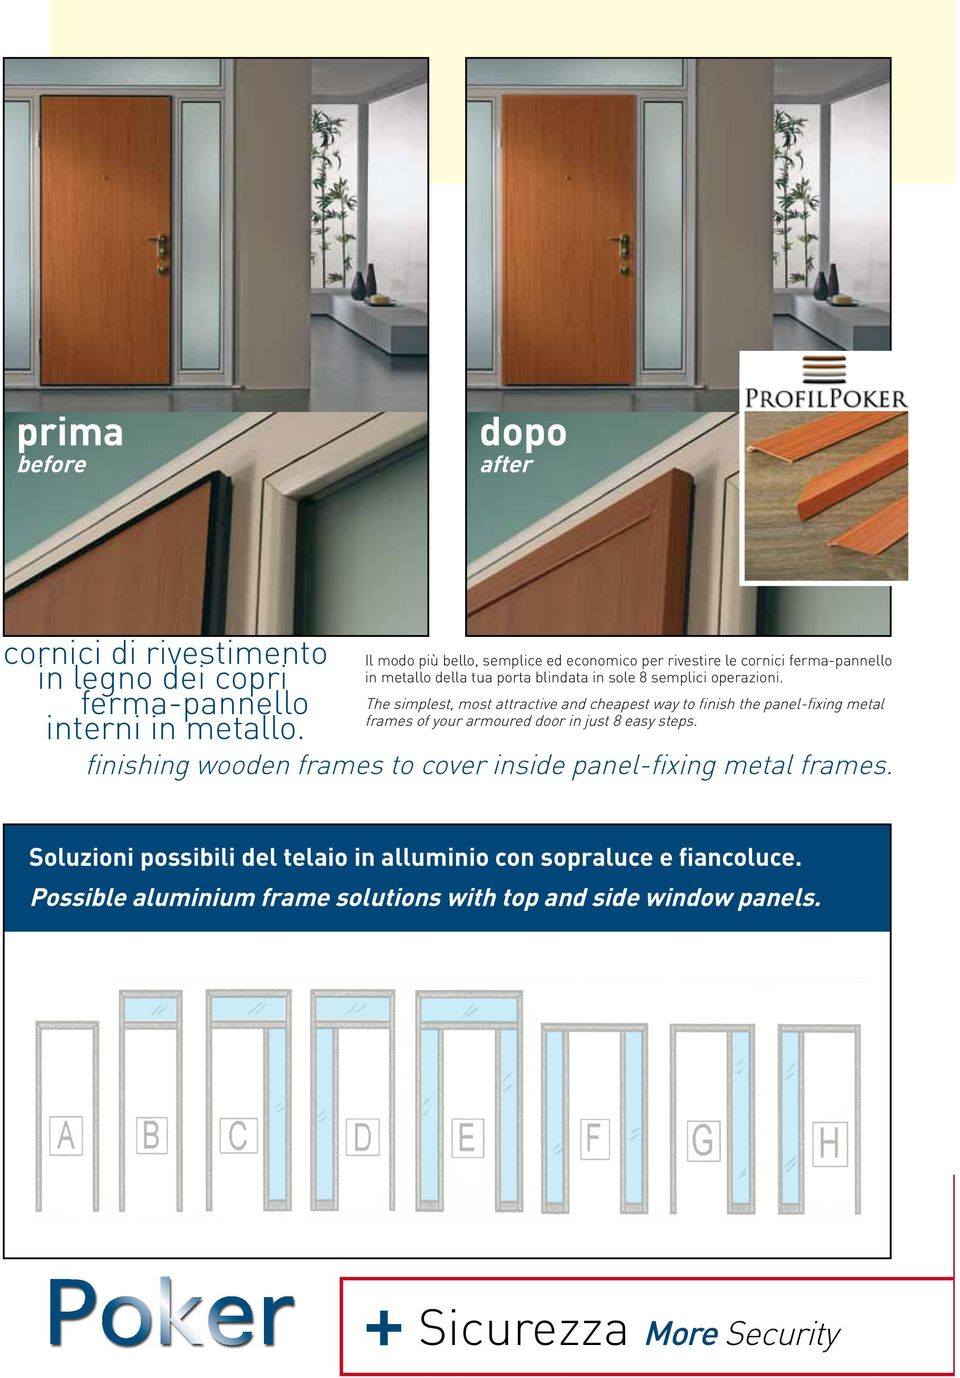 The simplest, most attractive and cheapest way to finish the panel-fixing metal frames of your armoured door in just 8 easy steps.